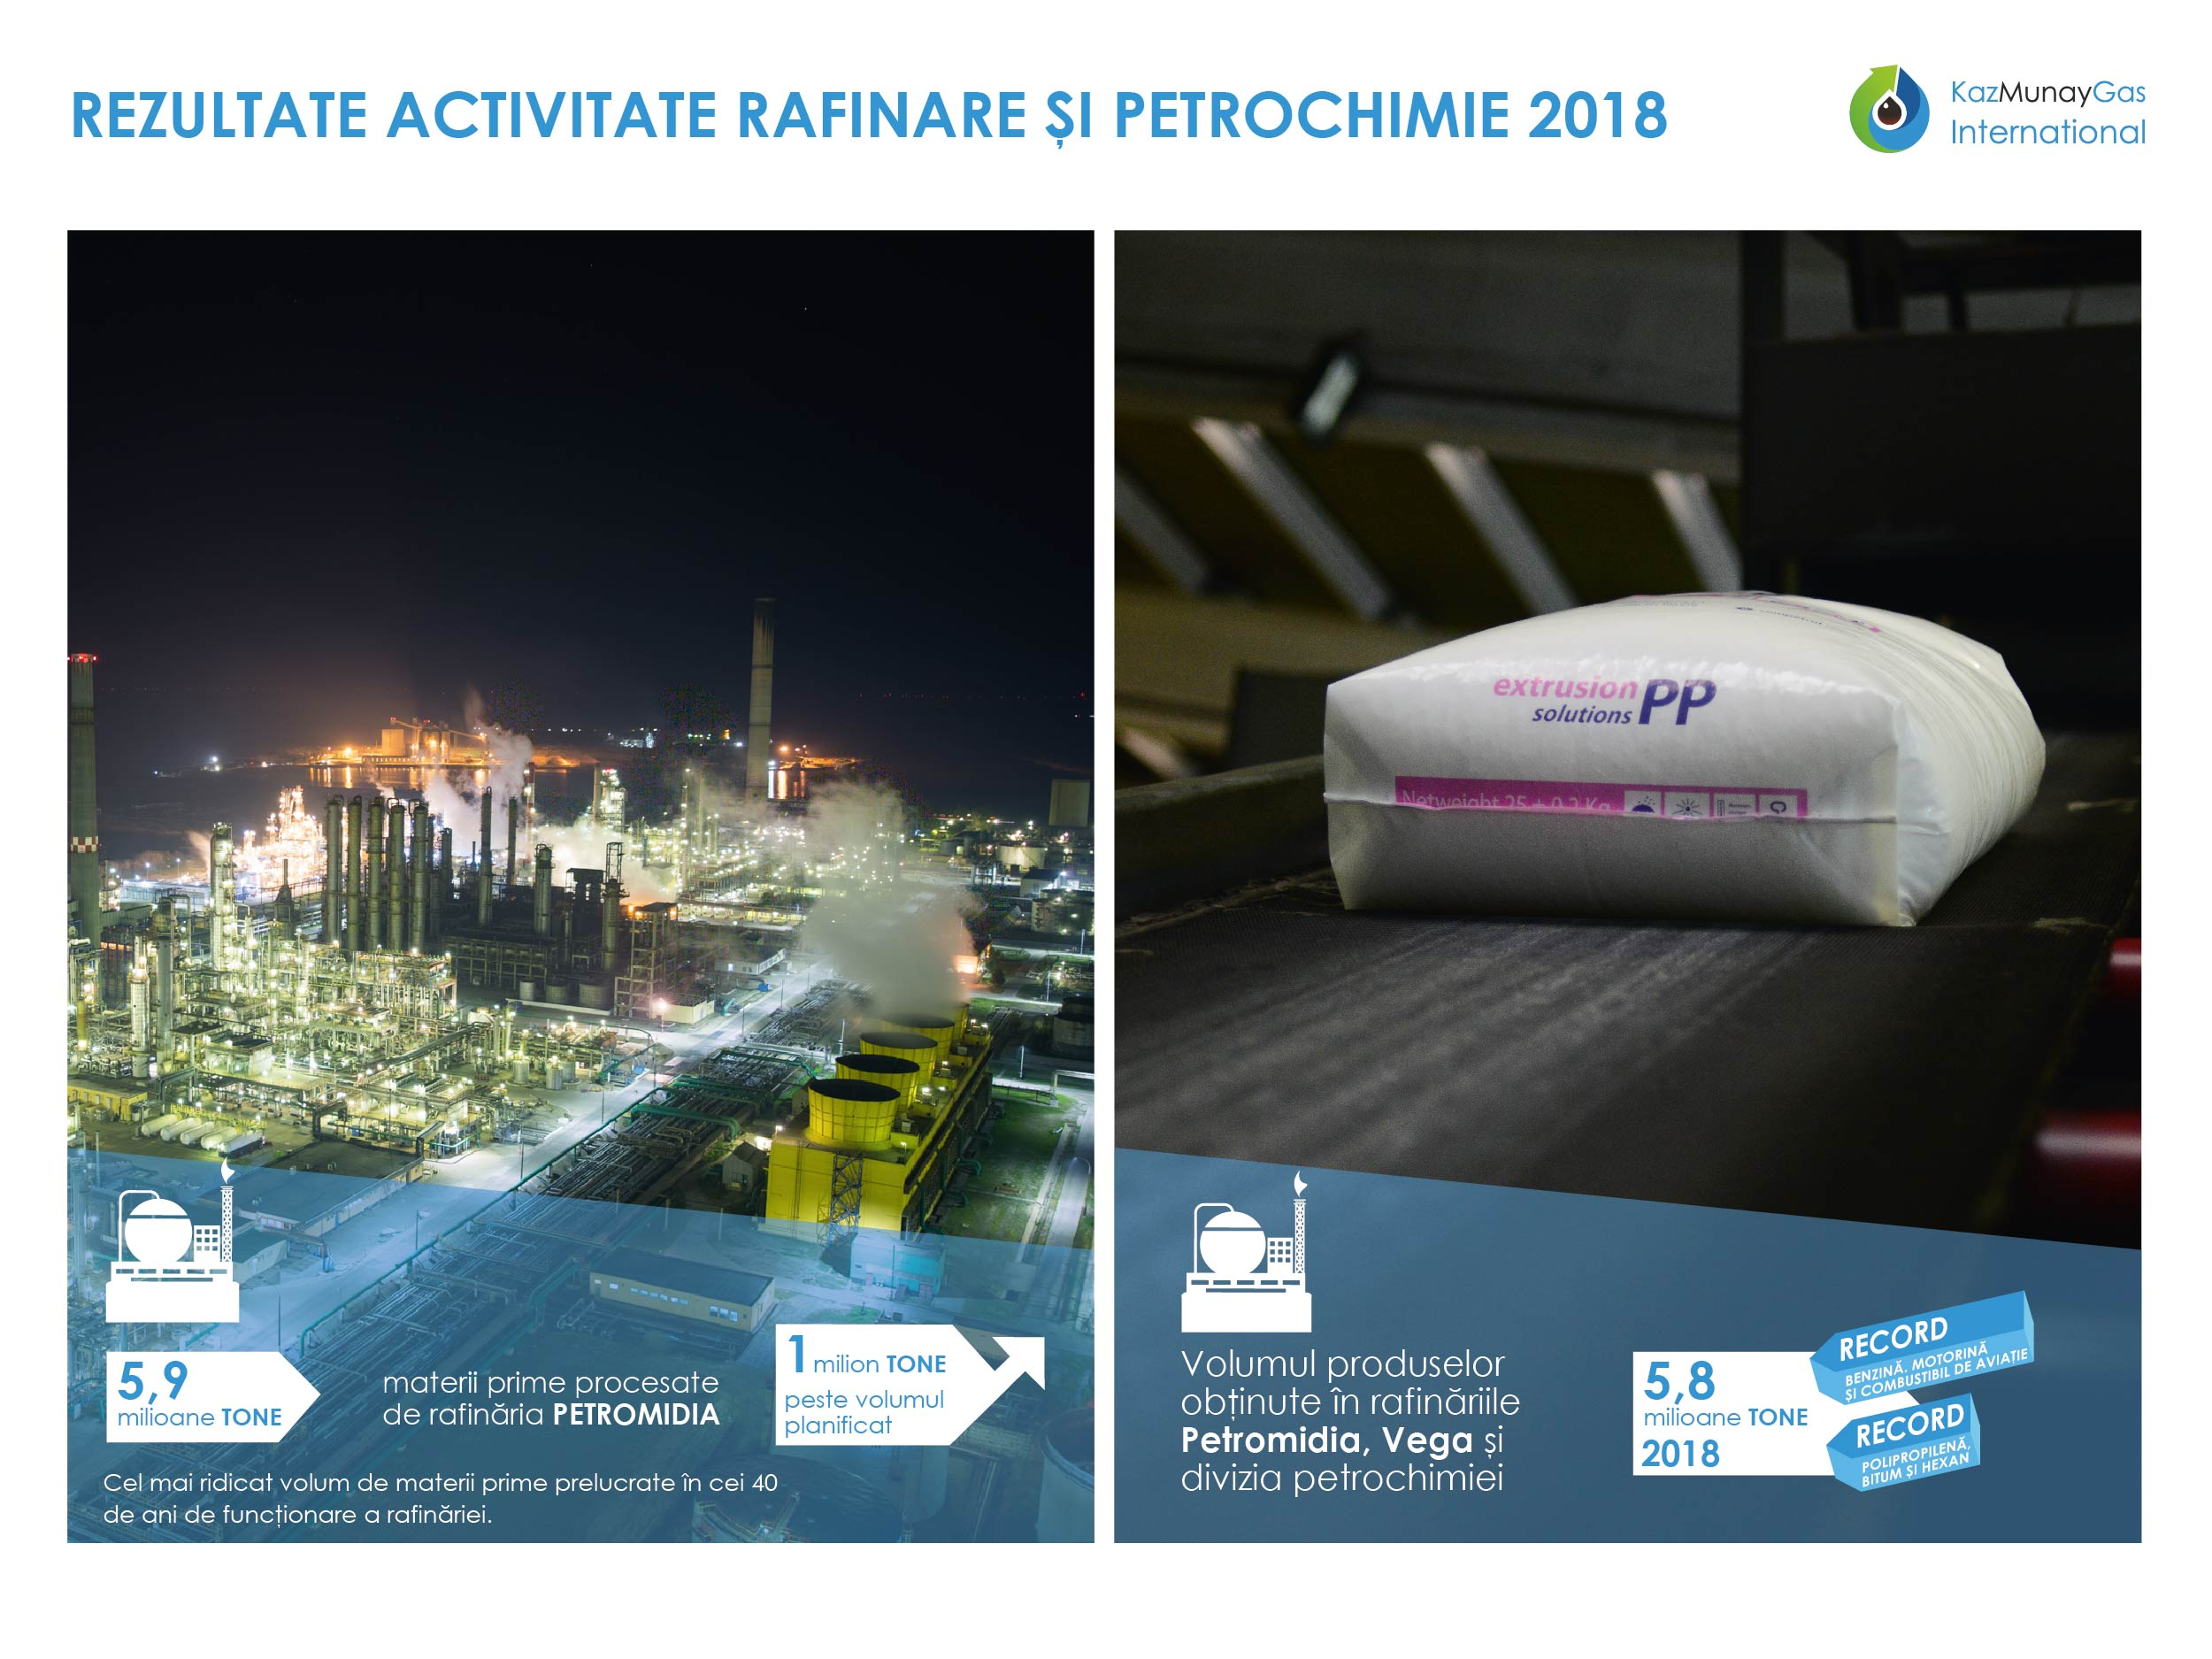 infografic 12 Refining and Petrochemicals results 2018-02